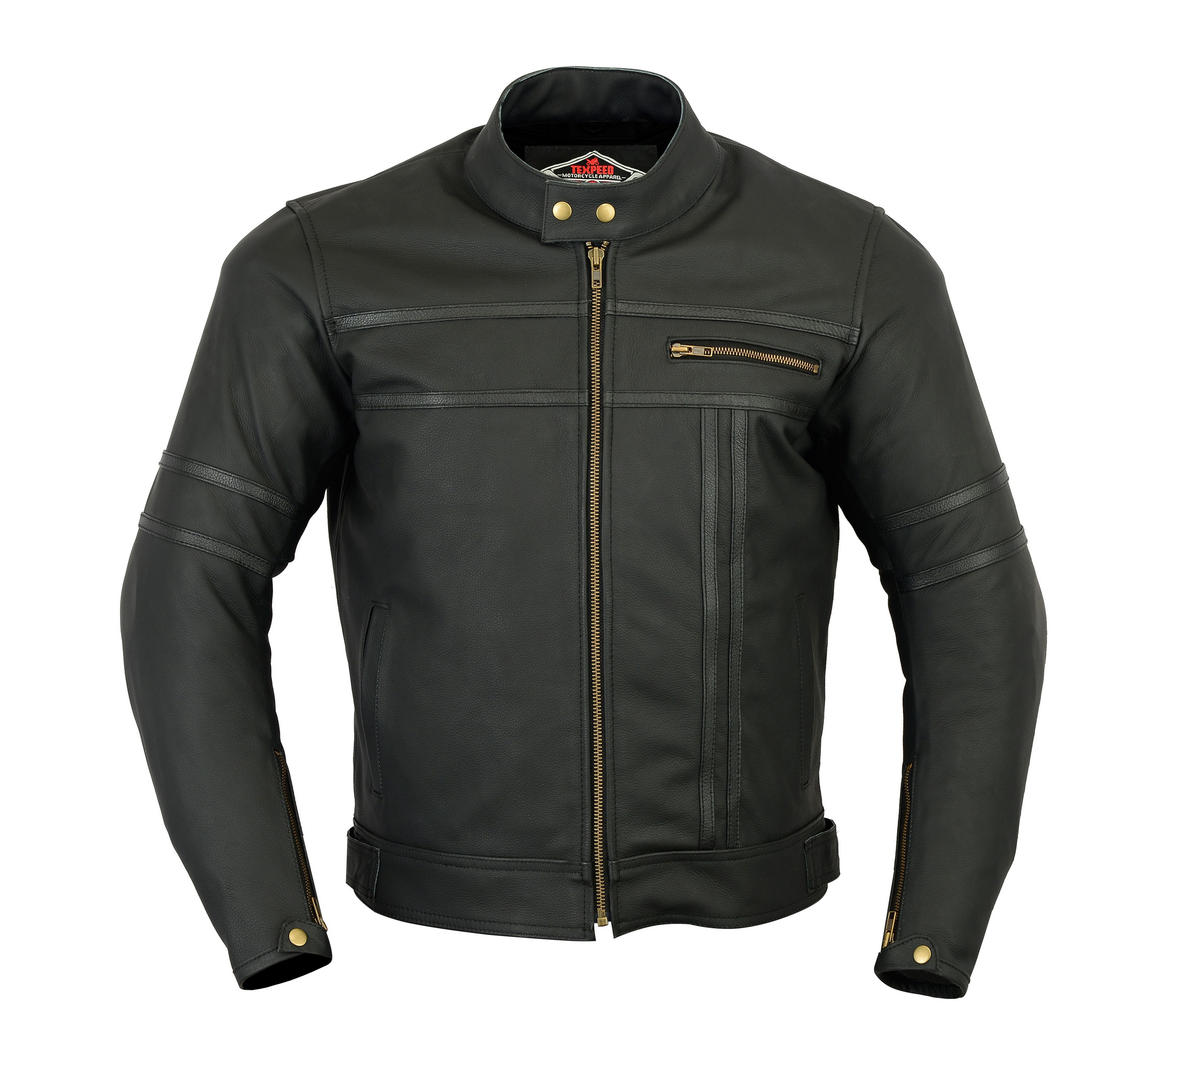 Leather Motorbike Jacket Motorcycle Biker With CE Protect Armour Thermal Lining